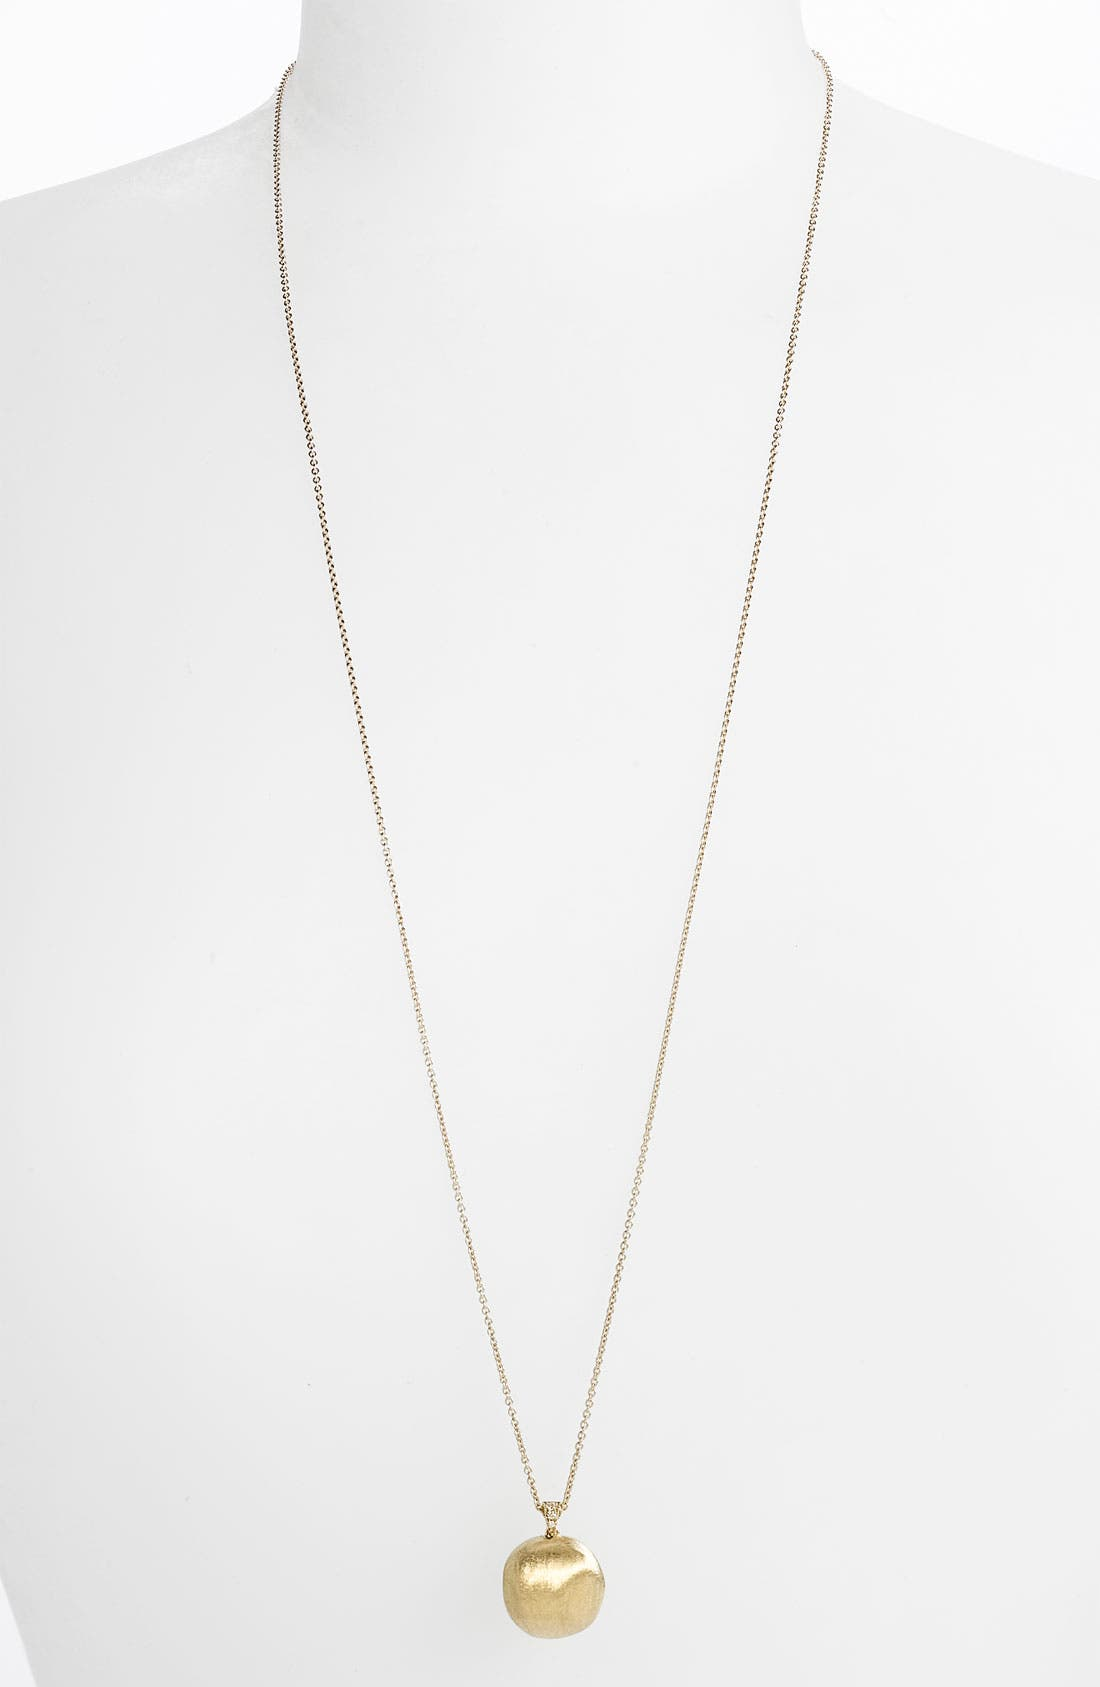 Alternate Image 1 Selected - Marco Bicego 'Africa' Long Pendant Necklace